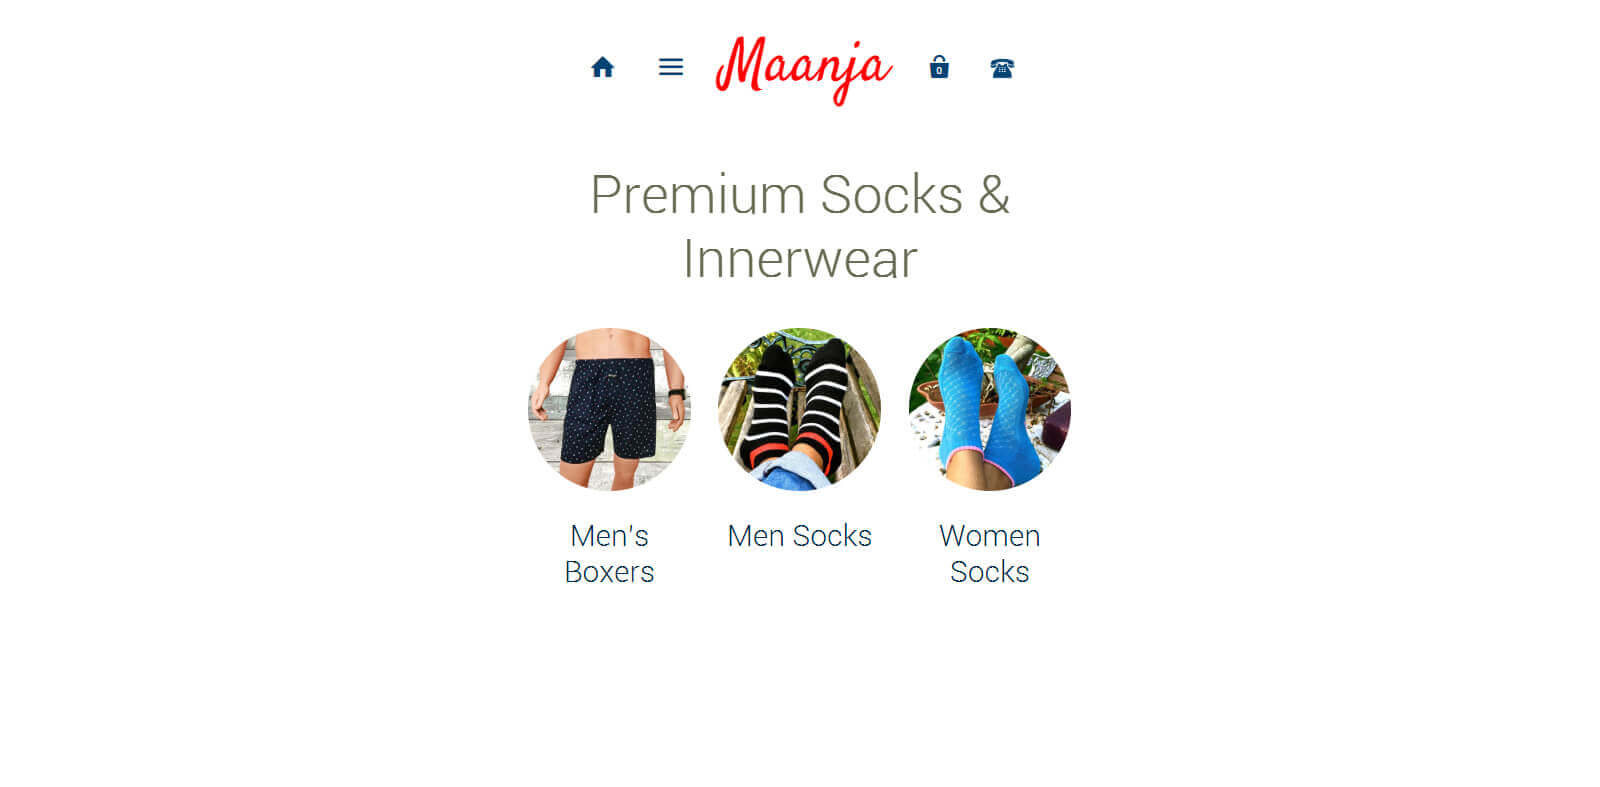 Maanja - Shopify Development